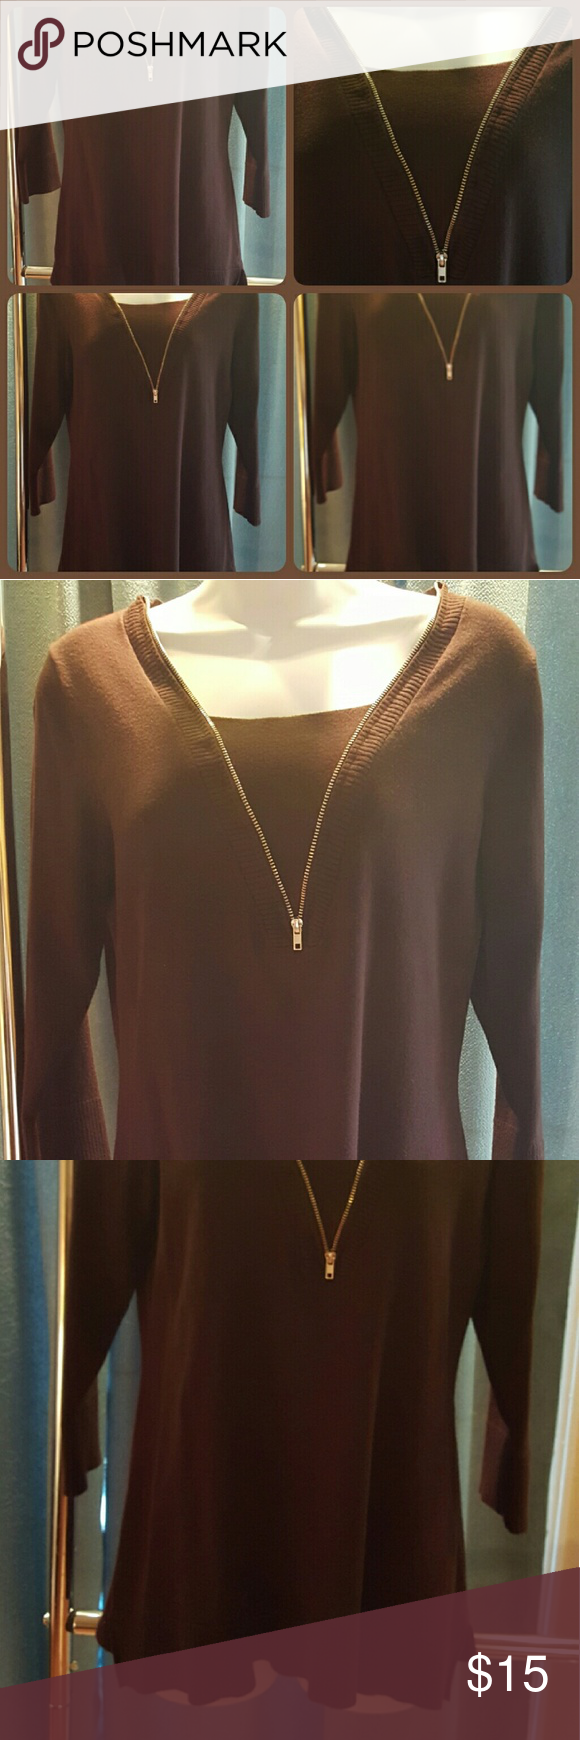 Sweater Gorgeous Brown Sweater with Designed Zipper in the front that gives it the illusion of a tank underneath. Mid length Sleeves. Size Large. Very good condition. Carolyn Taylor Sweaters V-Necks